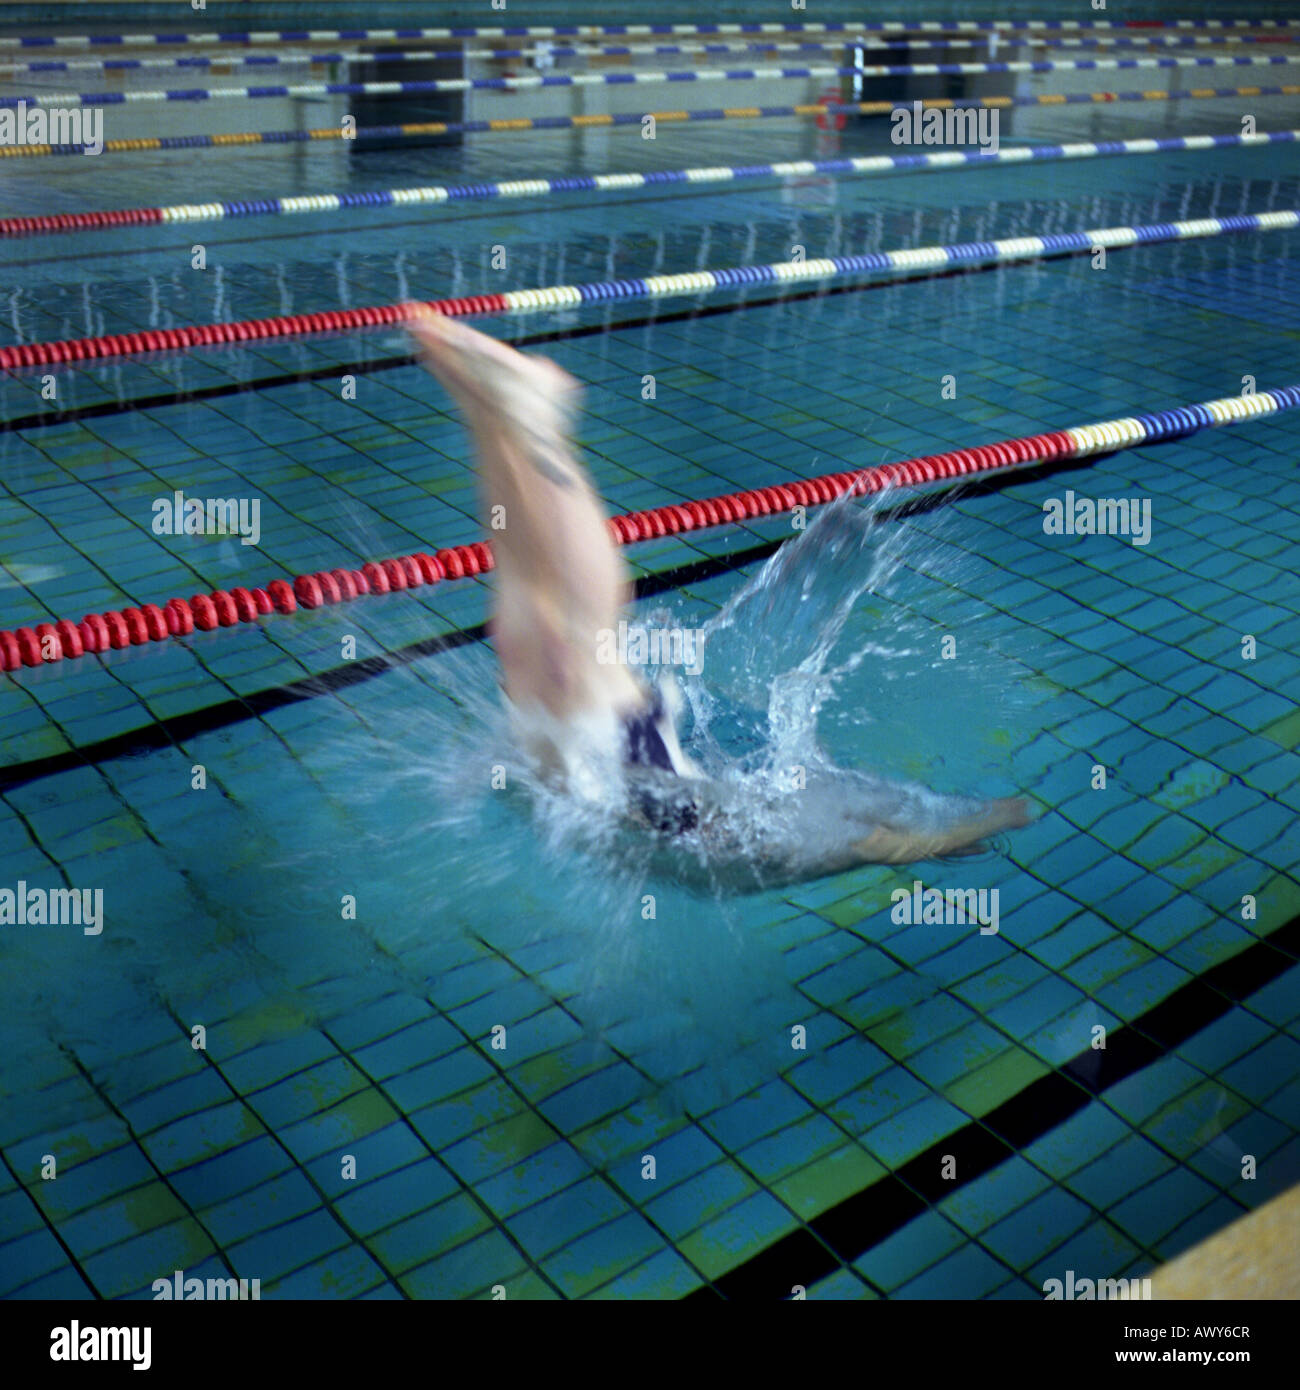 Olympic diving pool stock photos olympic diving pool - How many olympic sized swimming pools in uk ...